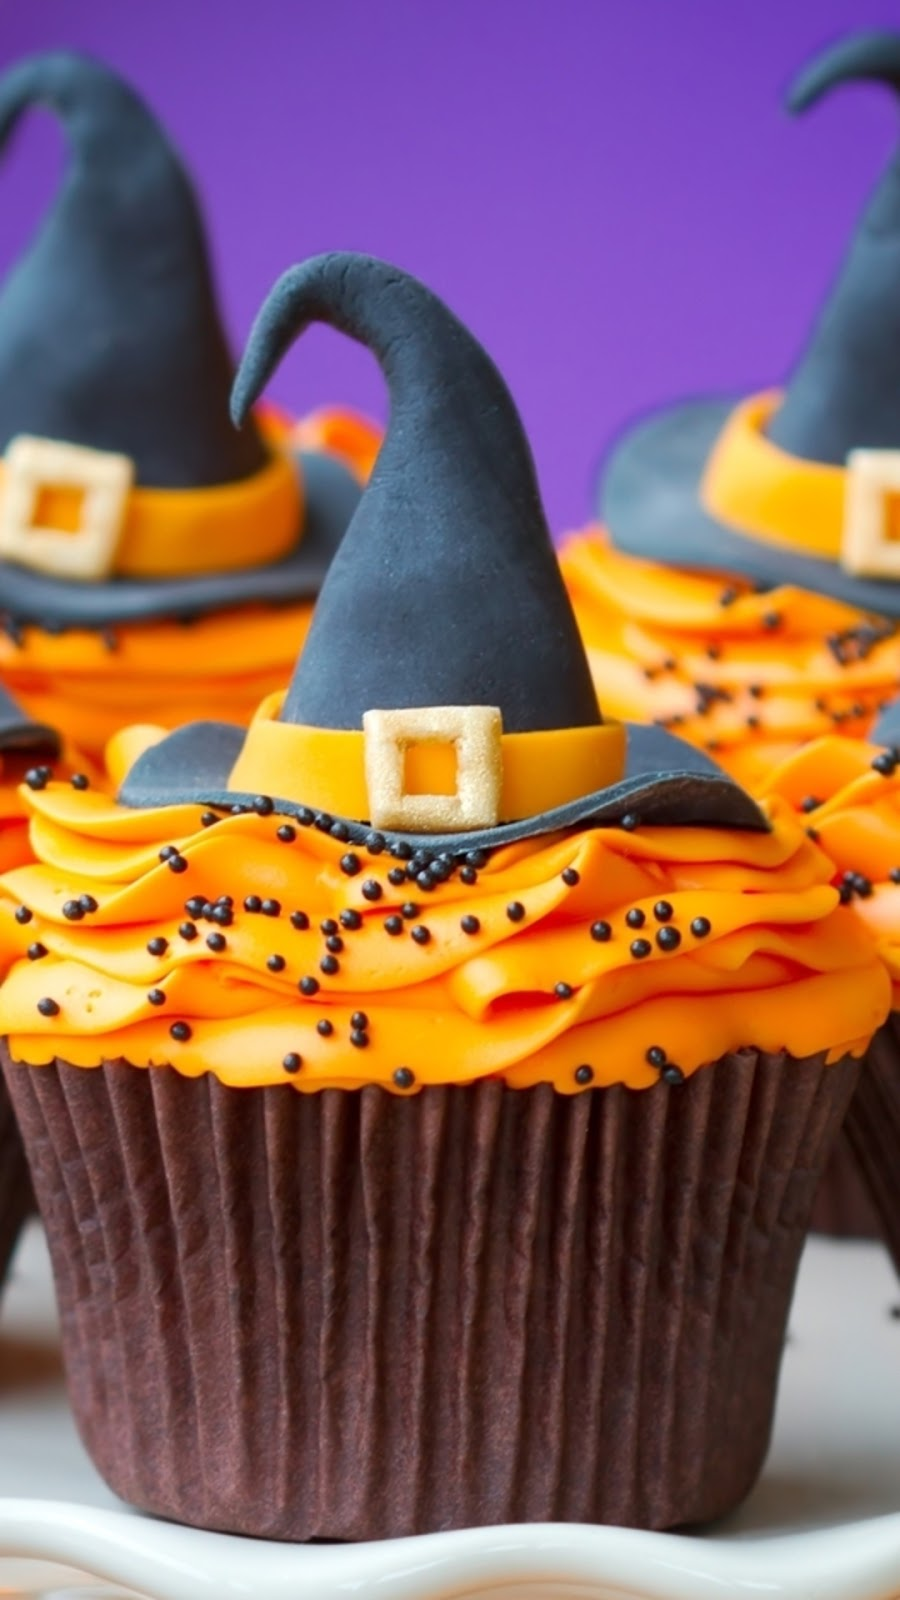 Halloween celebration chocolate cake mobile wallpaper